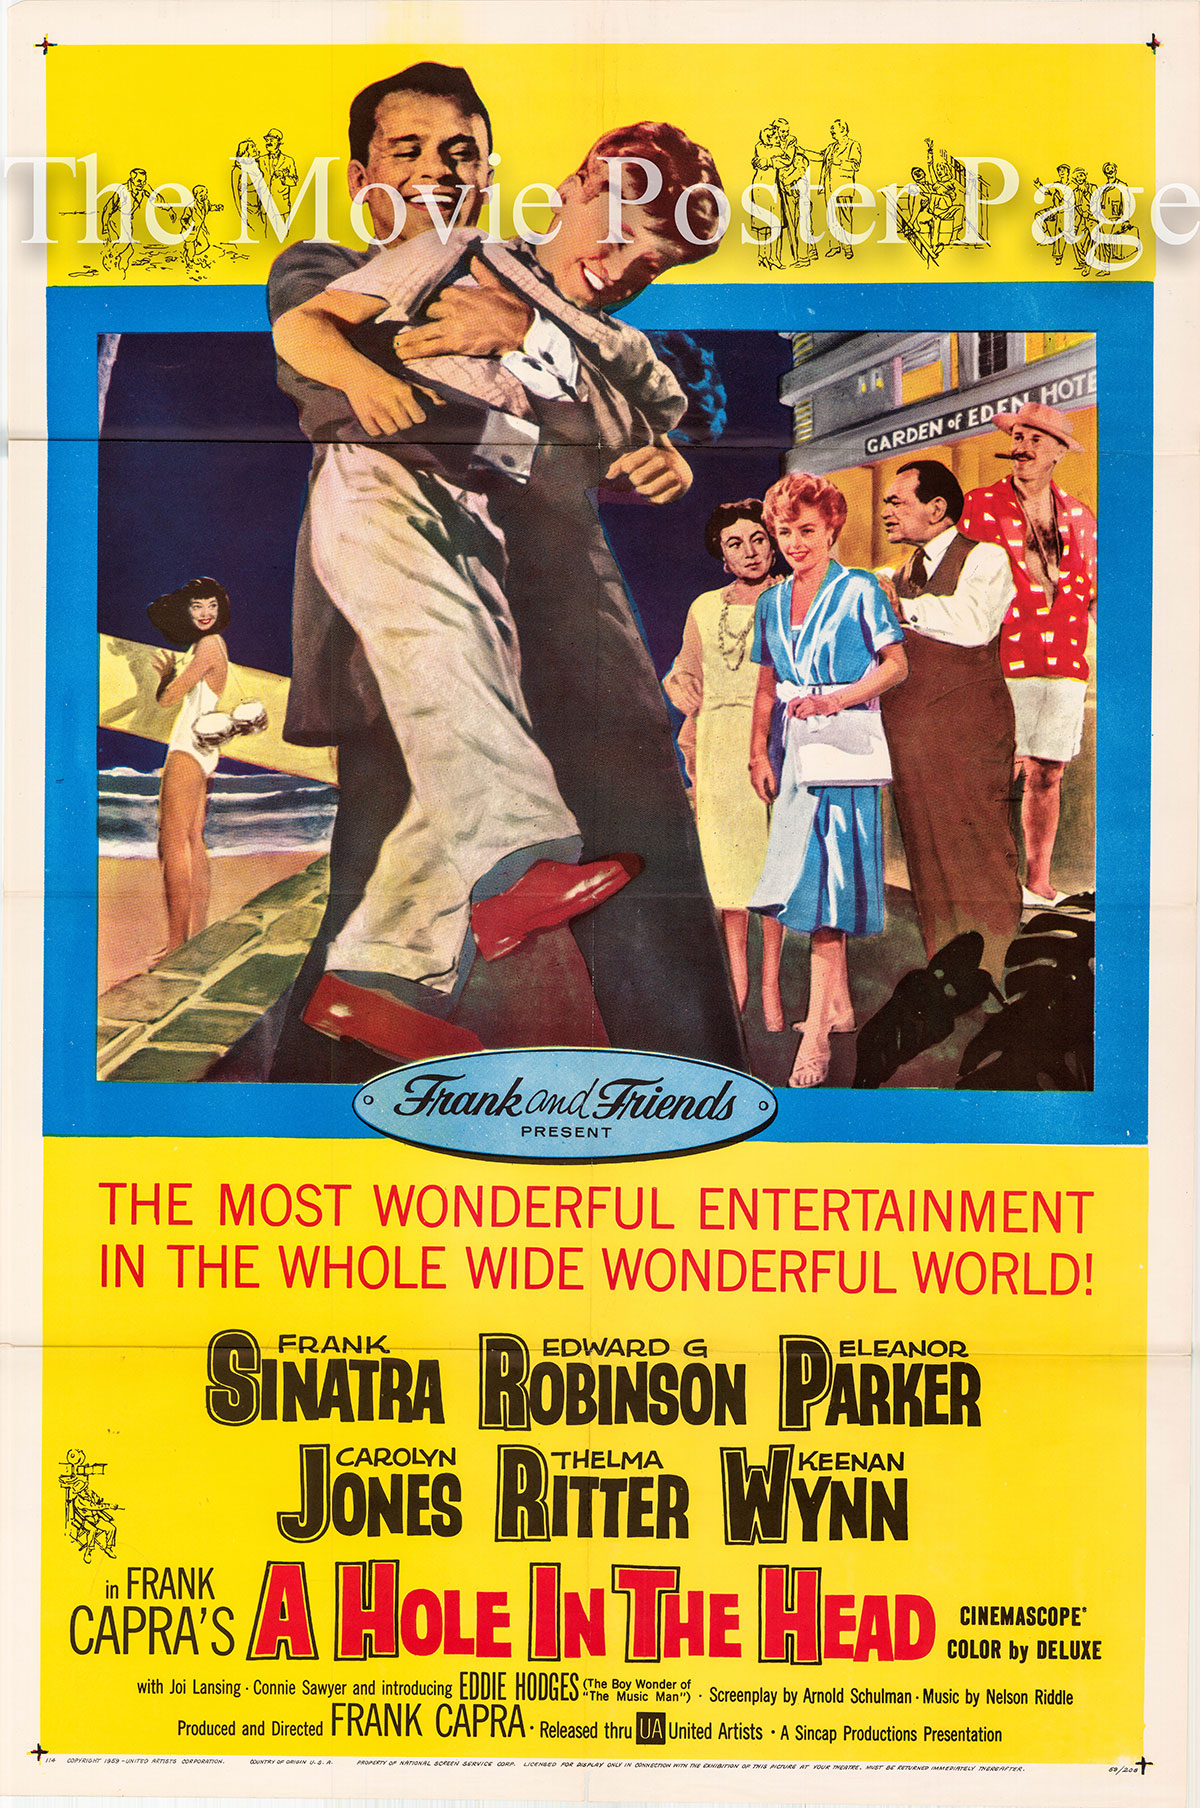 Pictured is a US one-sheet poster for the 1959 Frank Capra film A Hole in the Head starring Frank Sinatra.